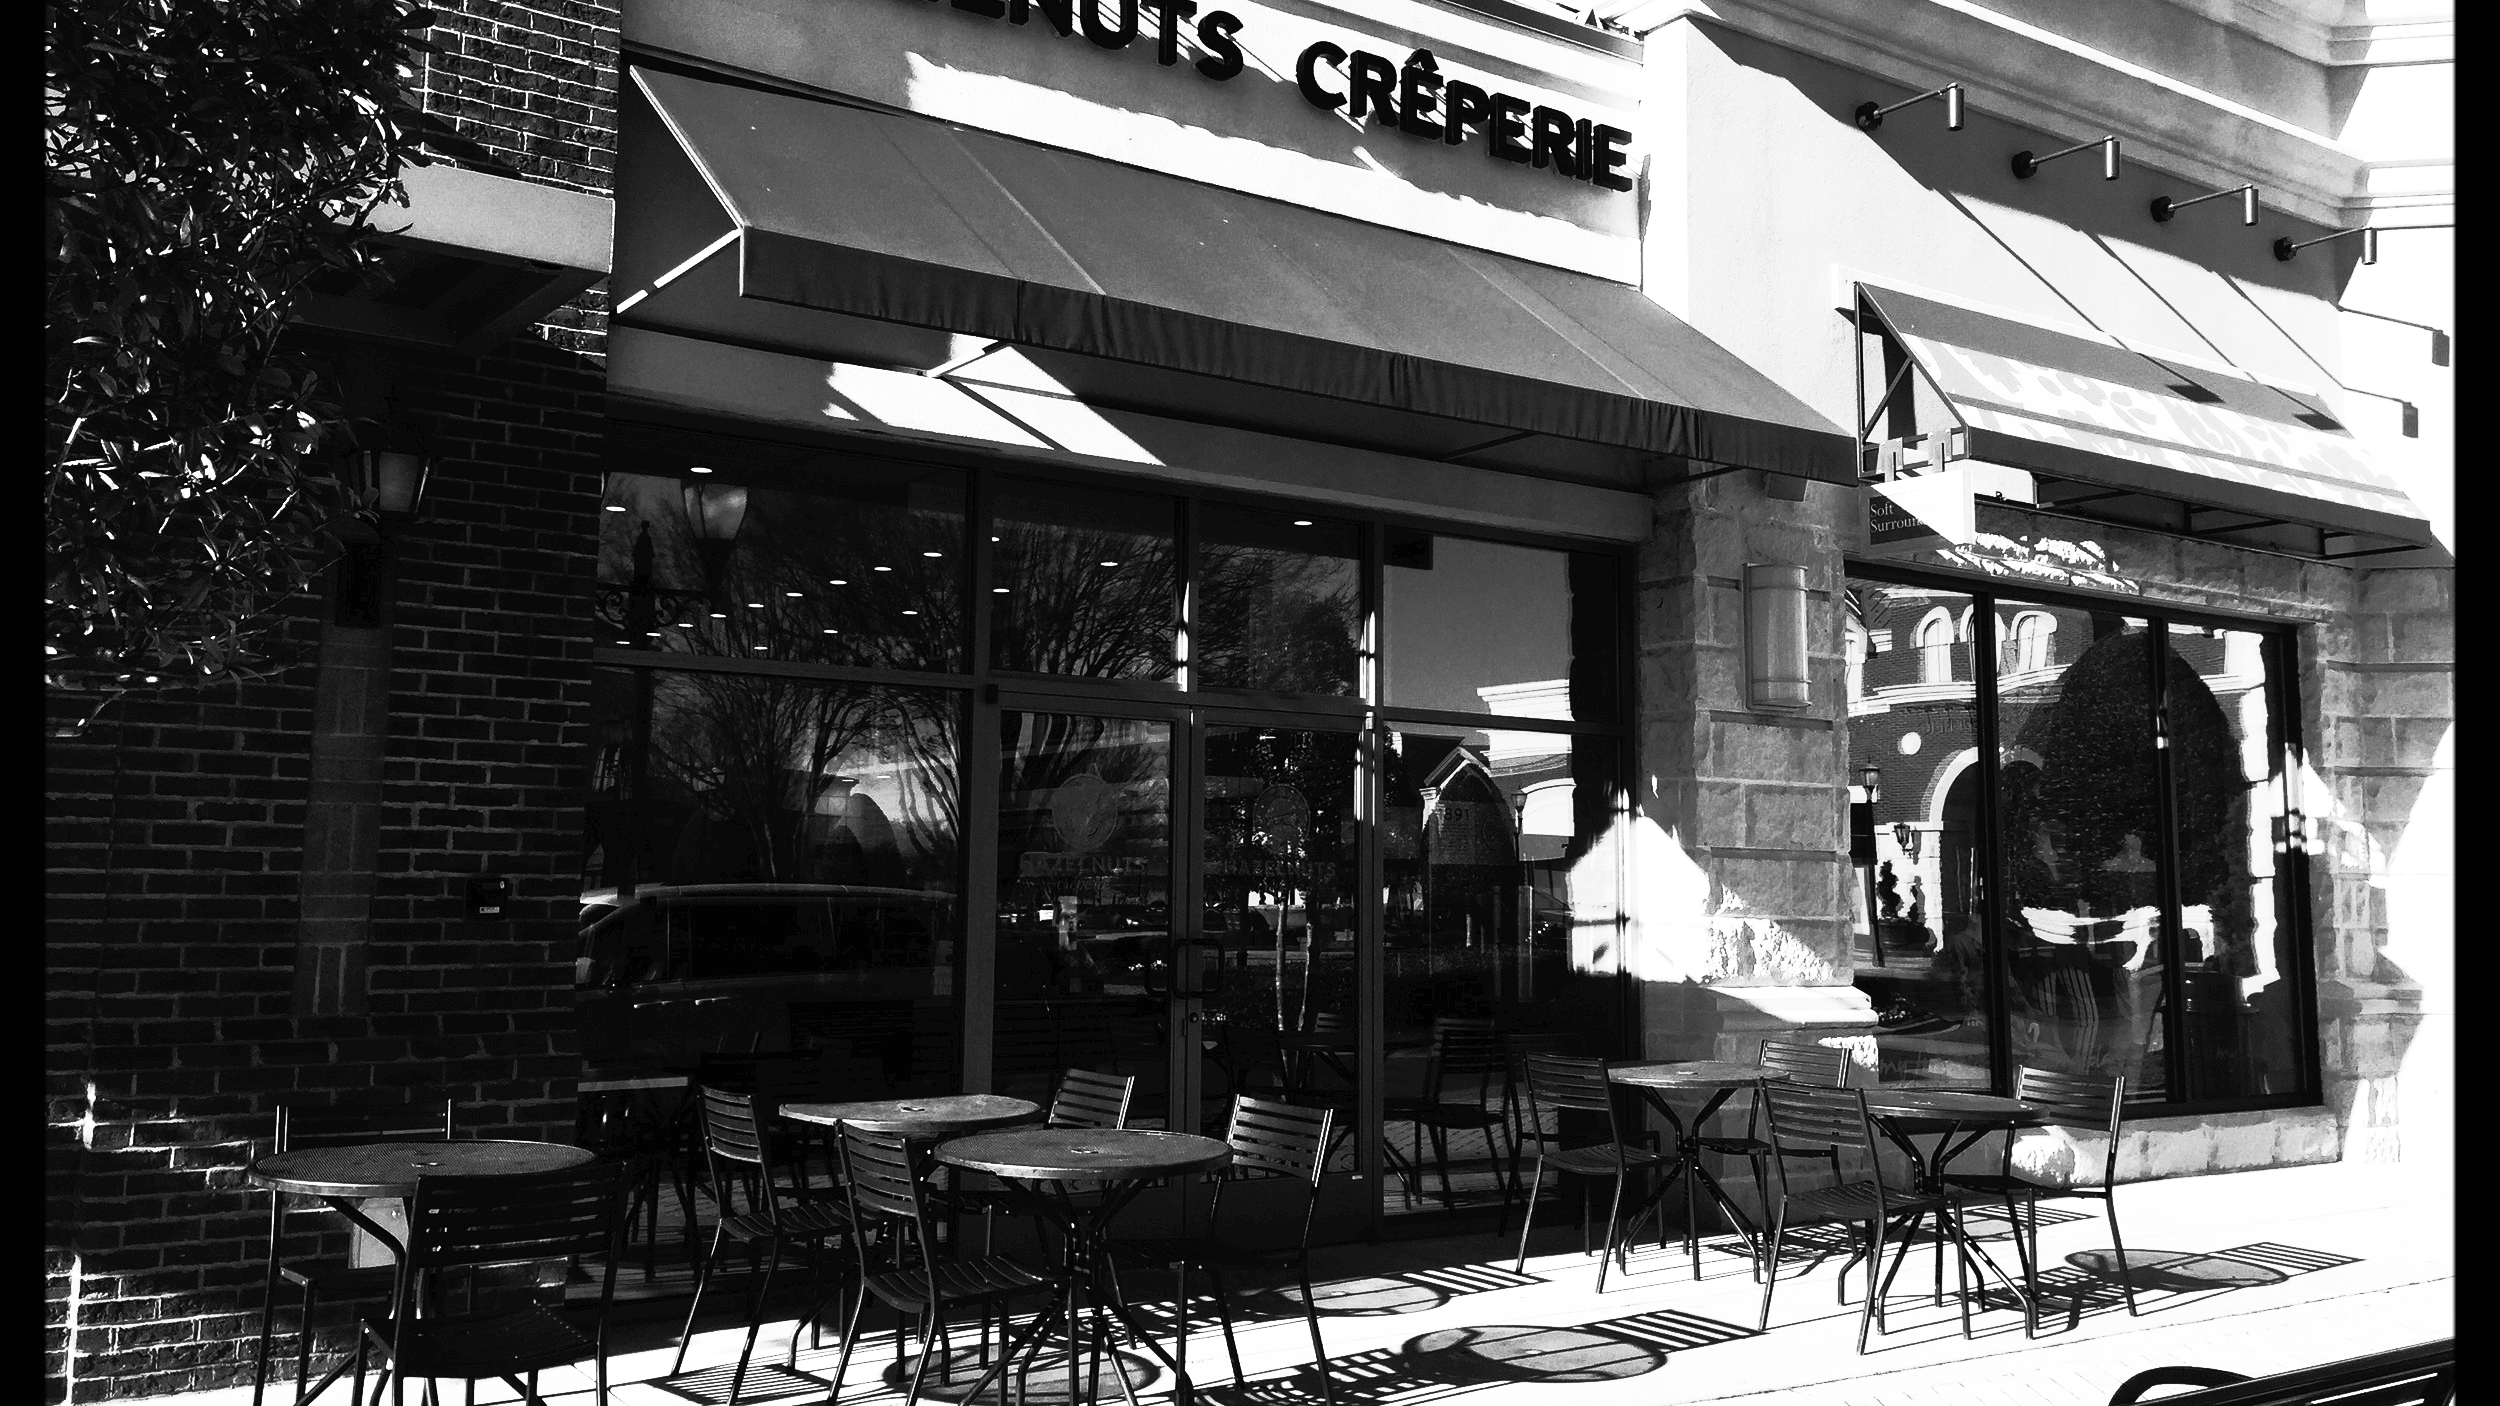 Come enjoy a delicious crepe on our patio at the Blakeney Shopping Center in South Charlotte.